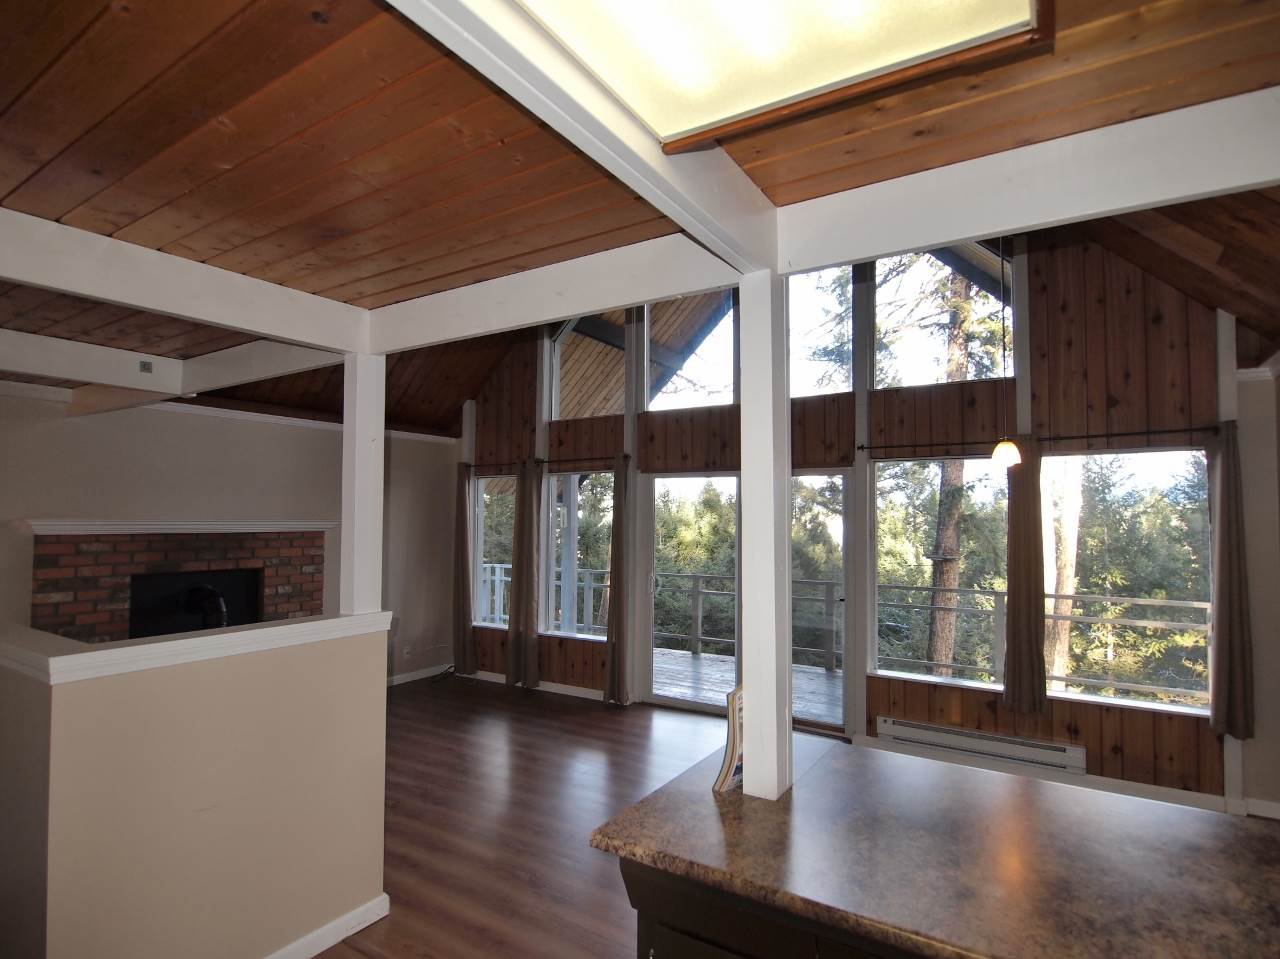 Photo 7: Photos: 4949 KYLLO Drive in 108 Mile Ranch: 108 Ranch House for sale (100 Mile House (Zone 10))  : MLS®# R2014339